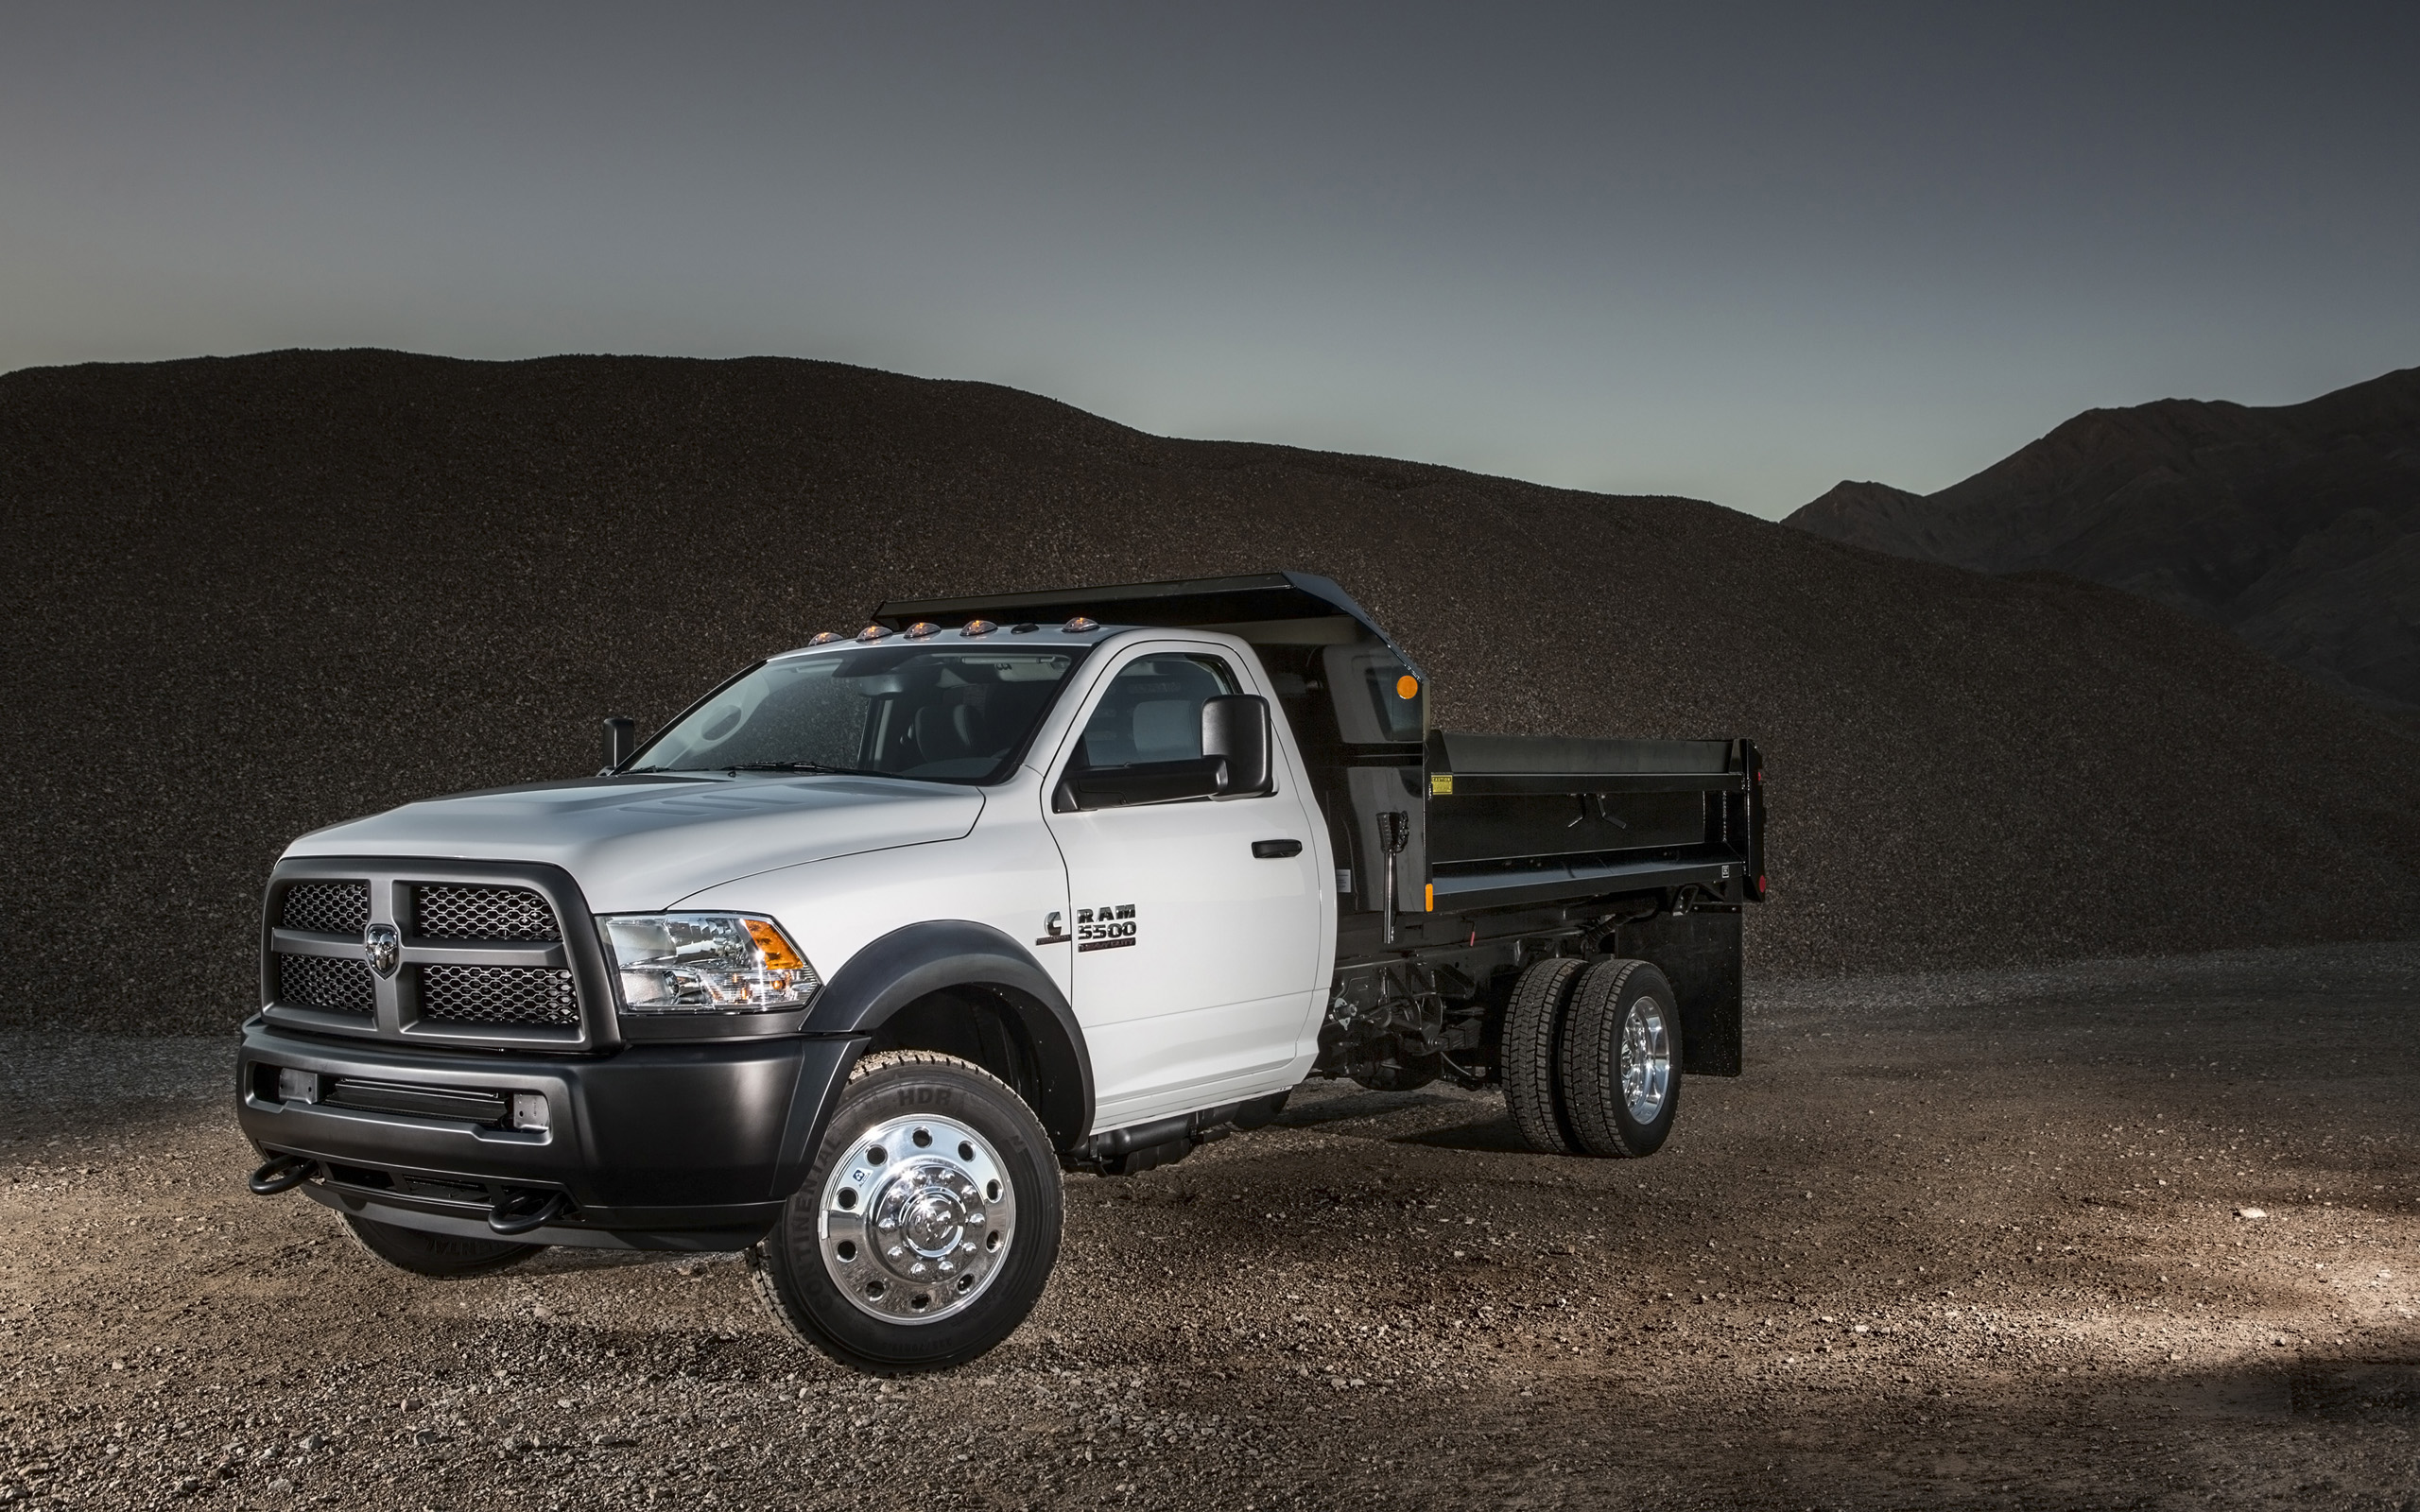 2014 dodge ram 5500 4x4 chassis cab f wallpaper for 5500 3